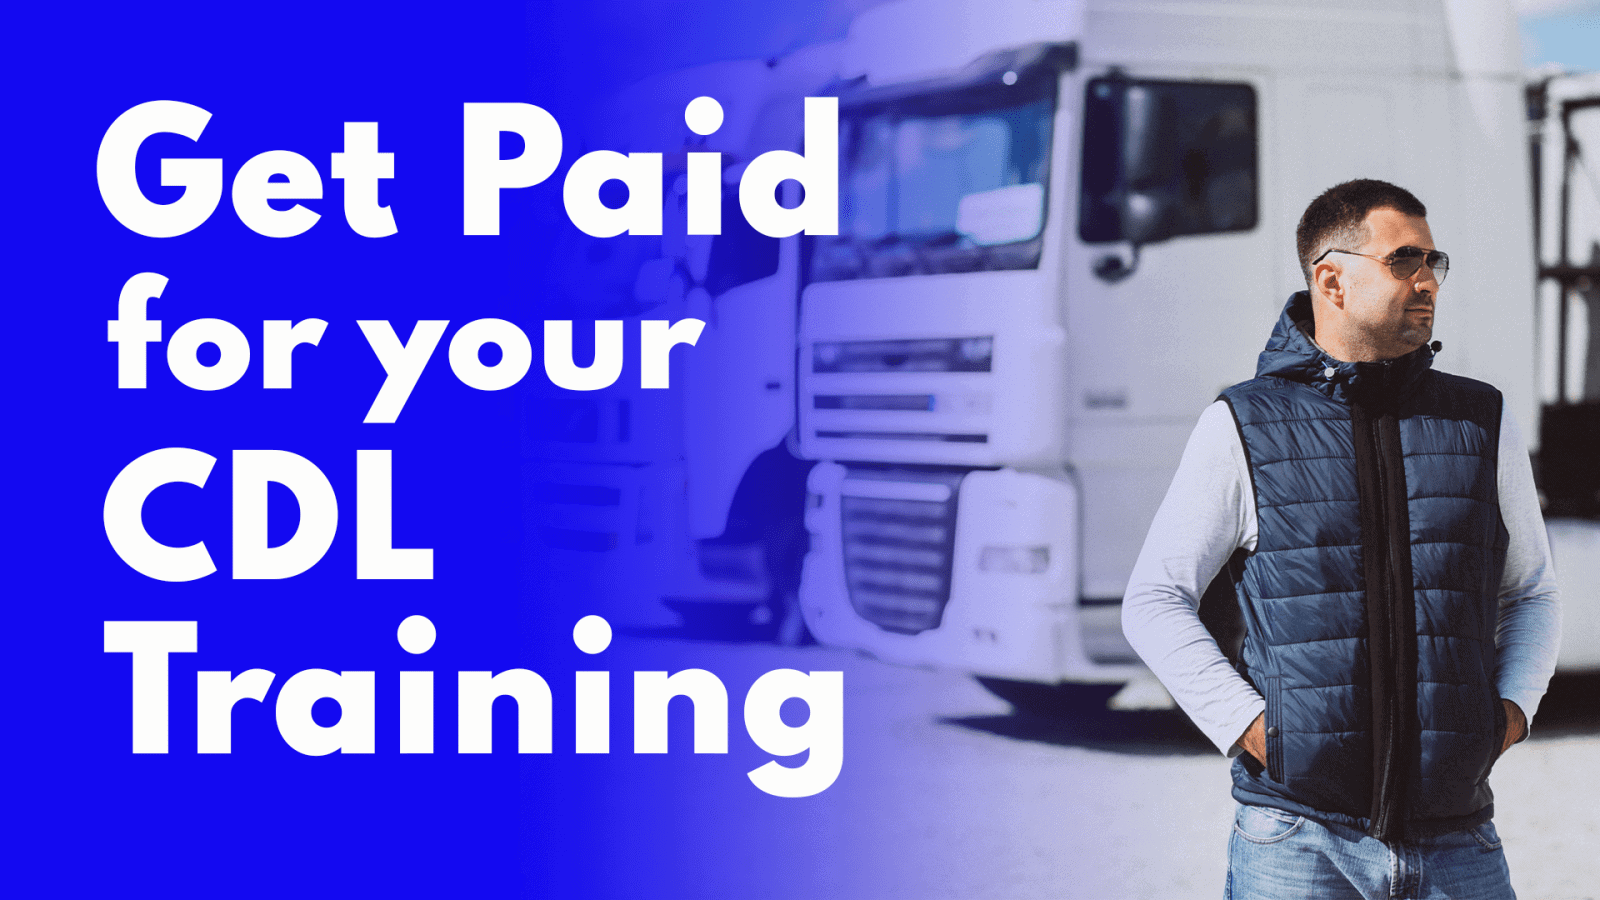 Get paid for Your CDL Training